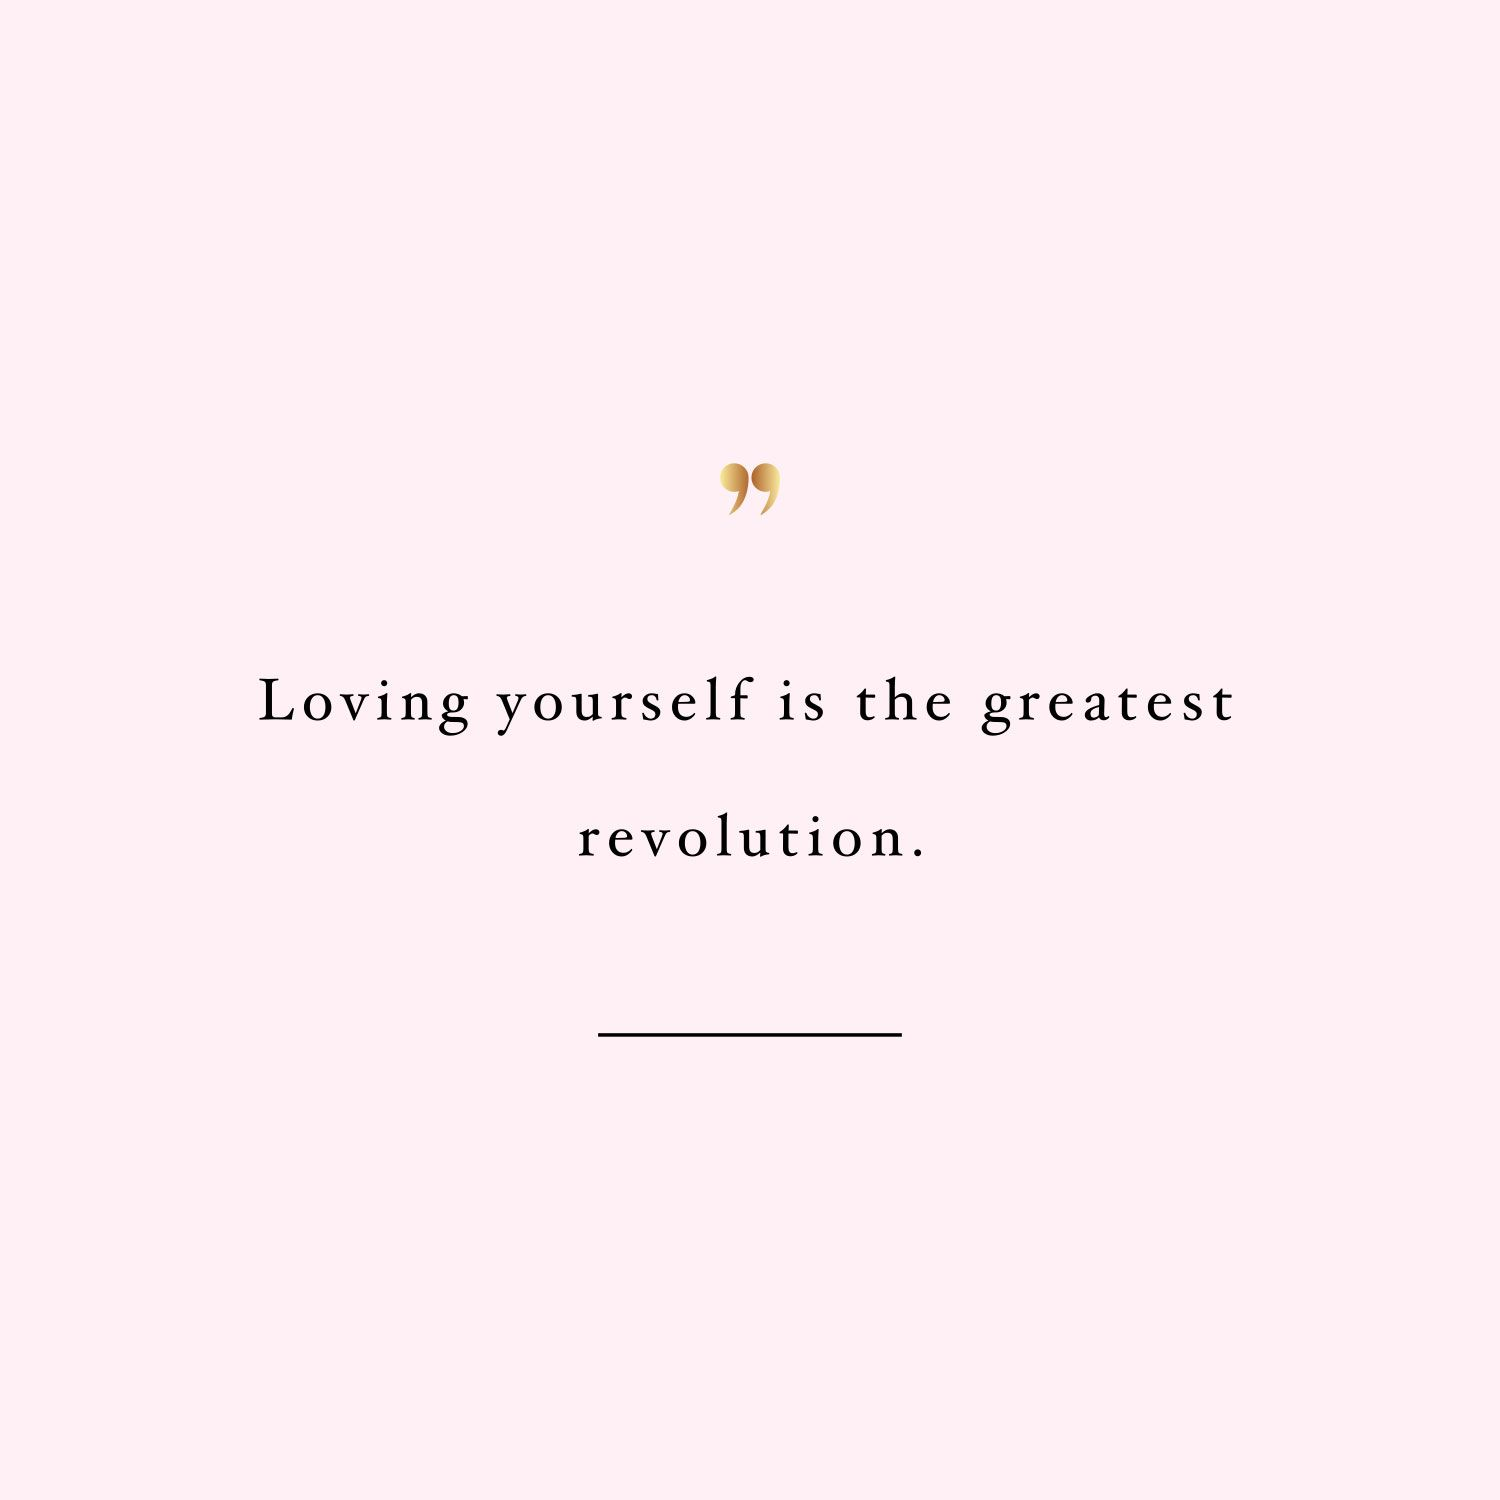 Dreaming Quotes · Loving Yourself Revolution!